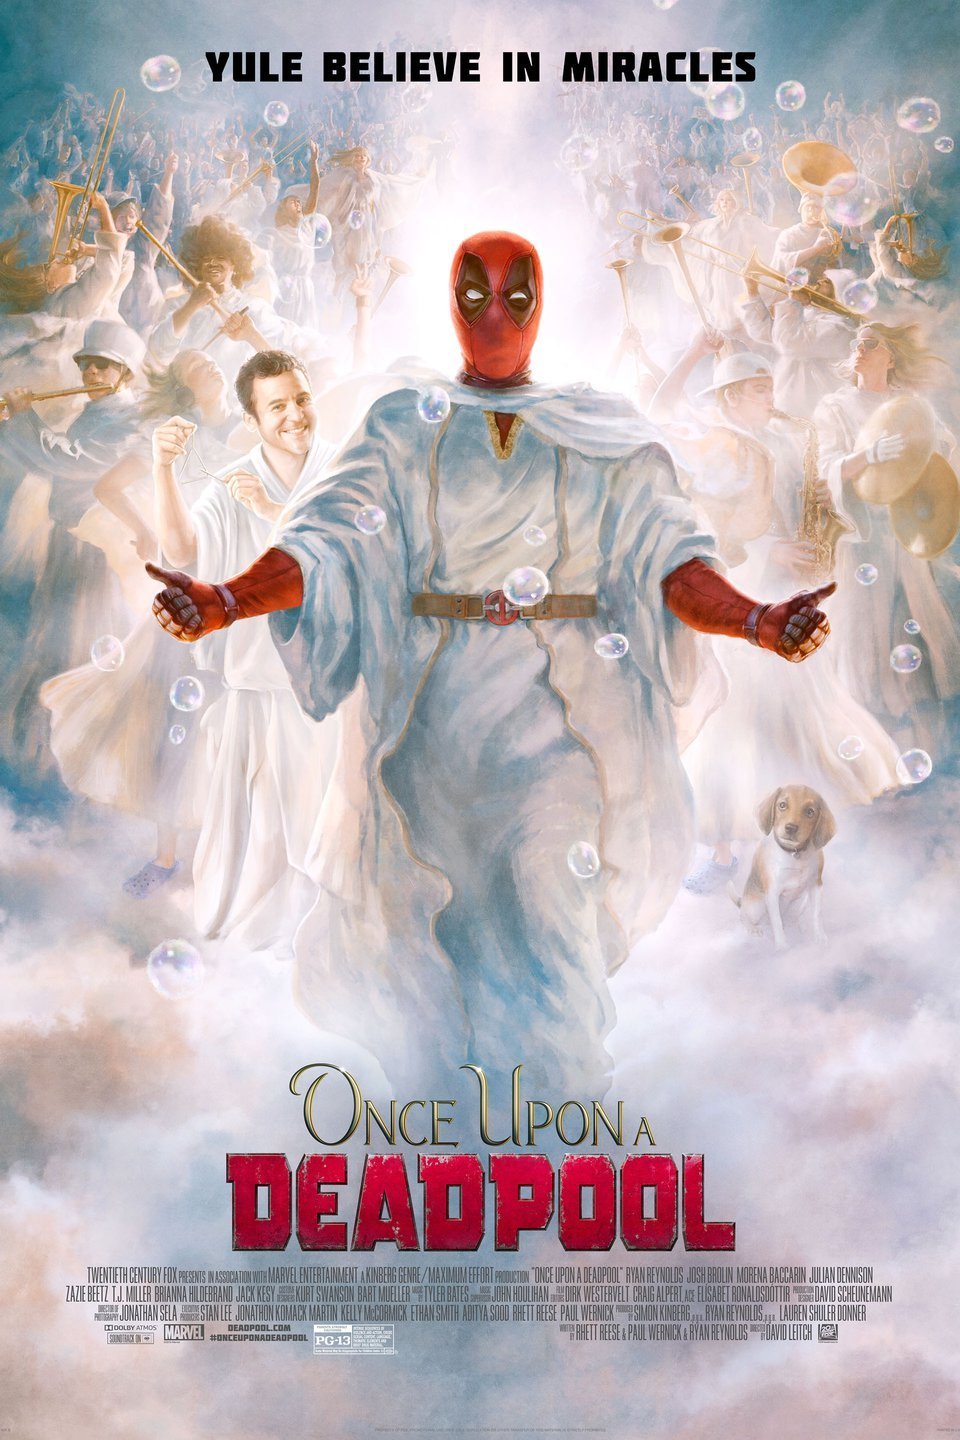 Download Once Upon A Deadpool 2018 HDRip AC3 X264-CMRG - SoftArchive